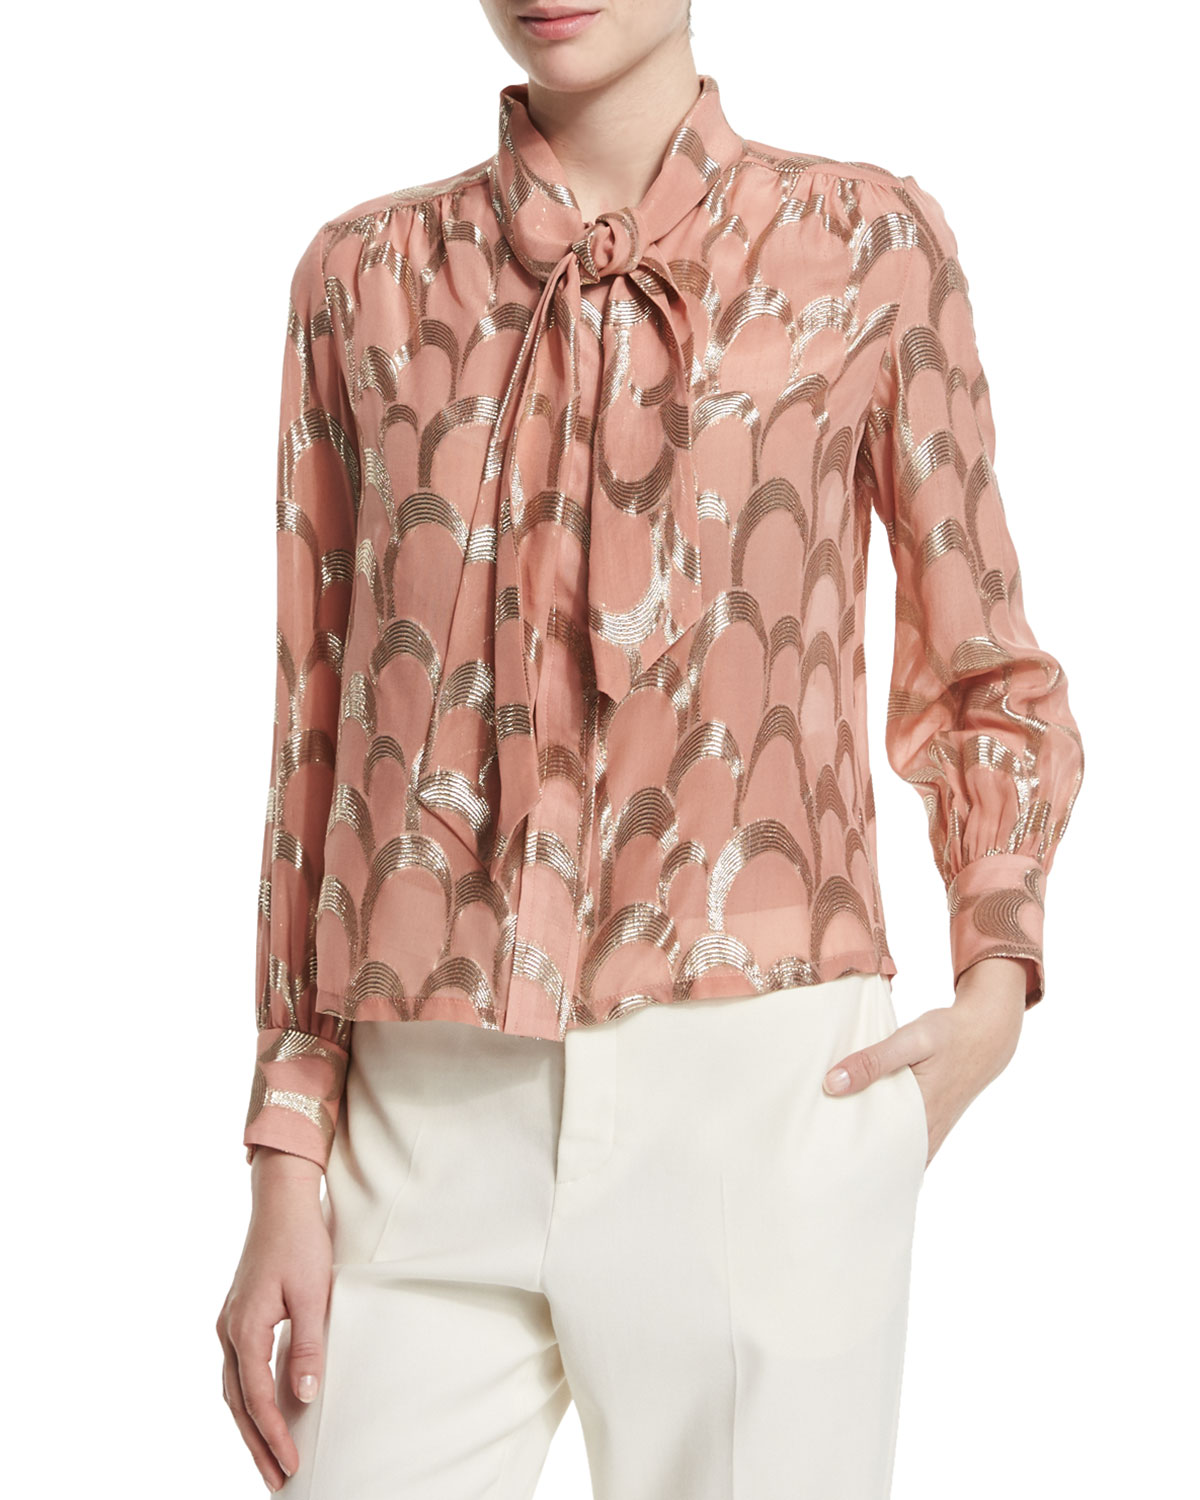 Long-Sleeve Metallic-Applique Blouse, Pink/Gold